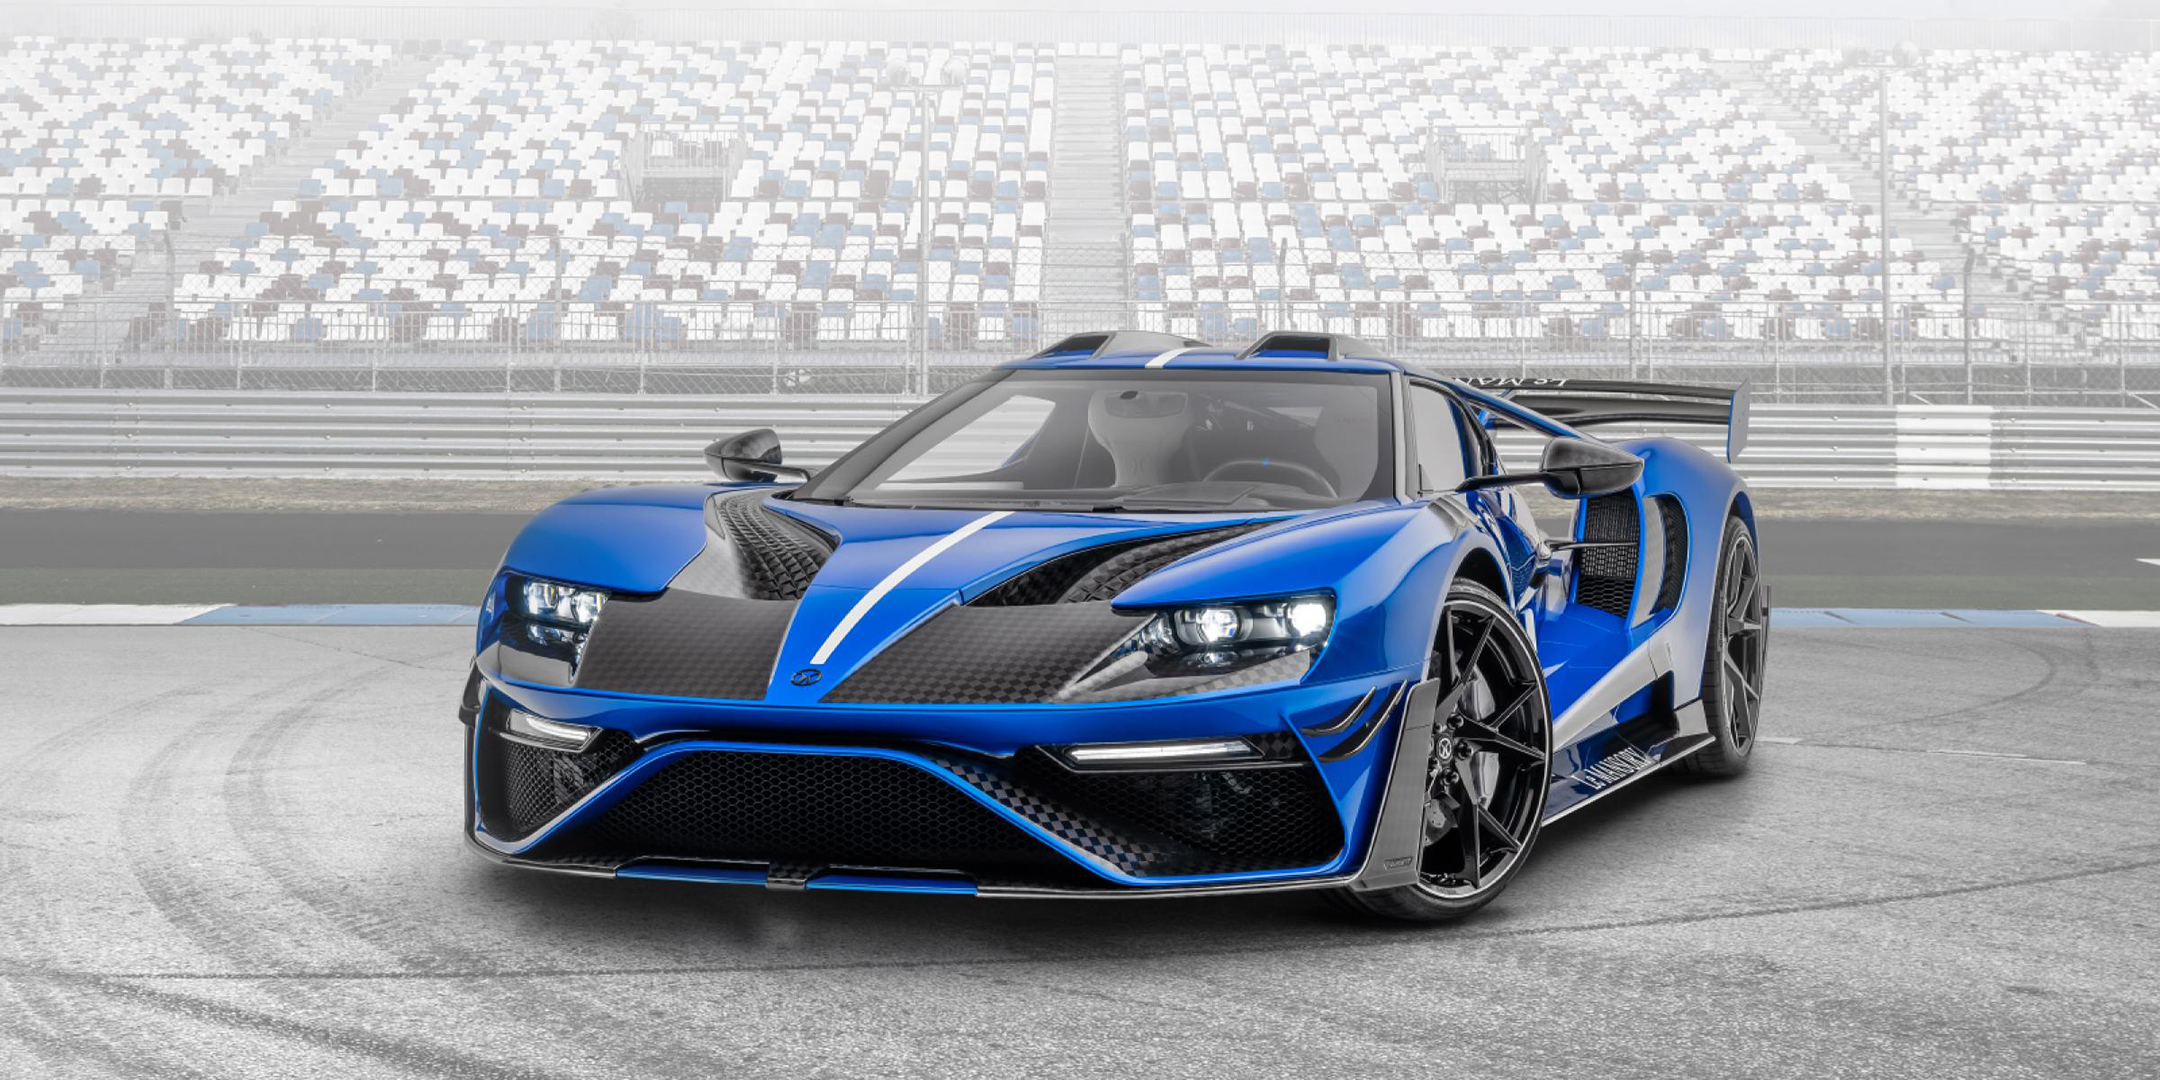 Le MANSORY - Ford GT custom - 2020 - front side-face / profil avant